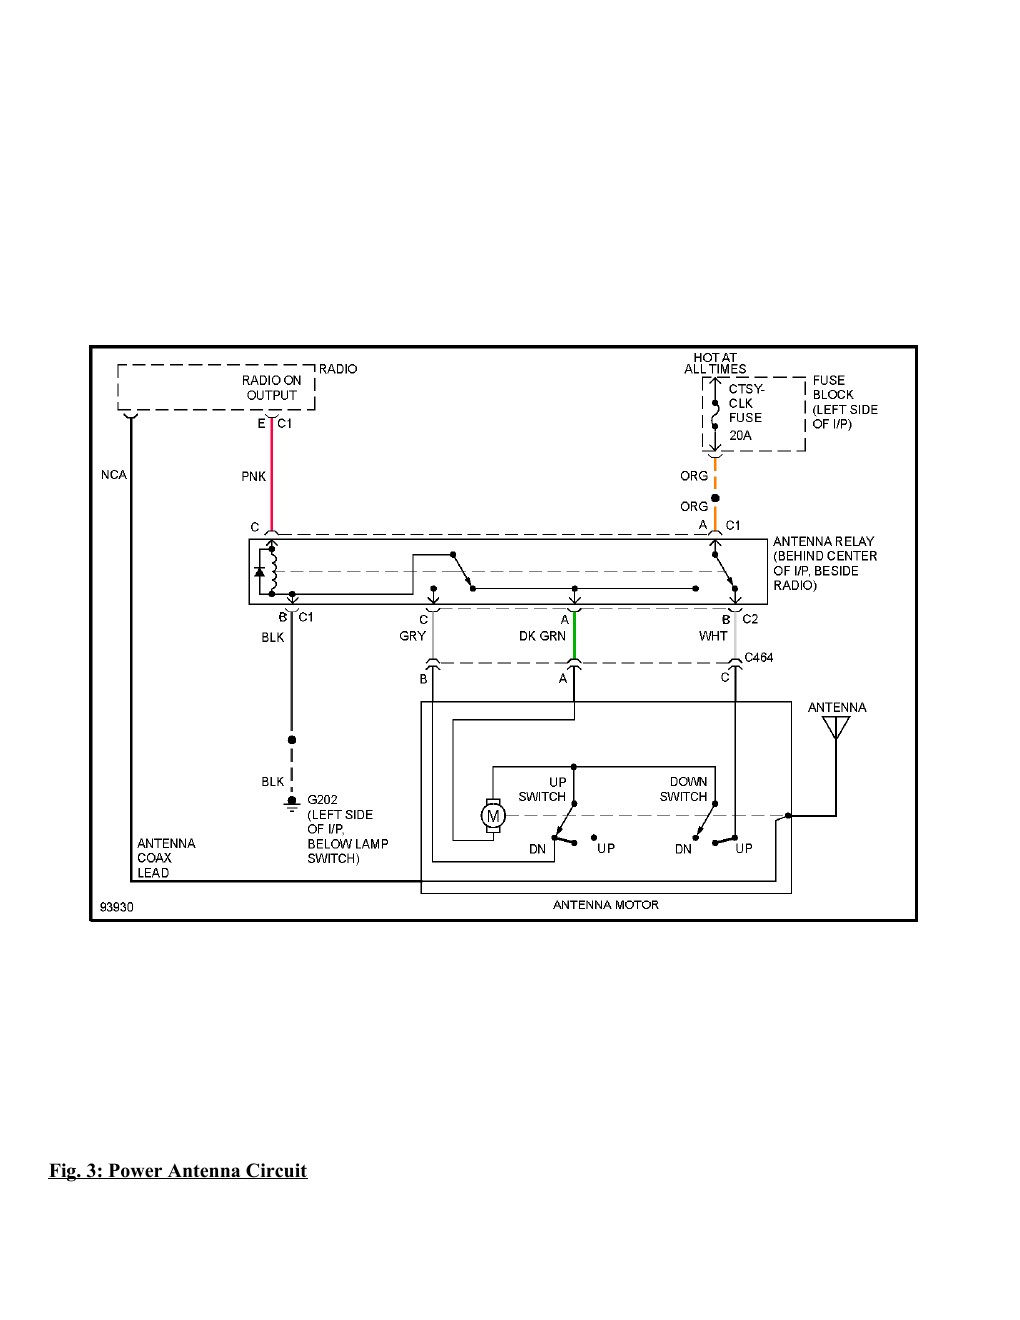 1995 Chevrolet Monte Carlo SS Complete Wiring Diagram Part